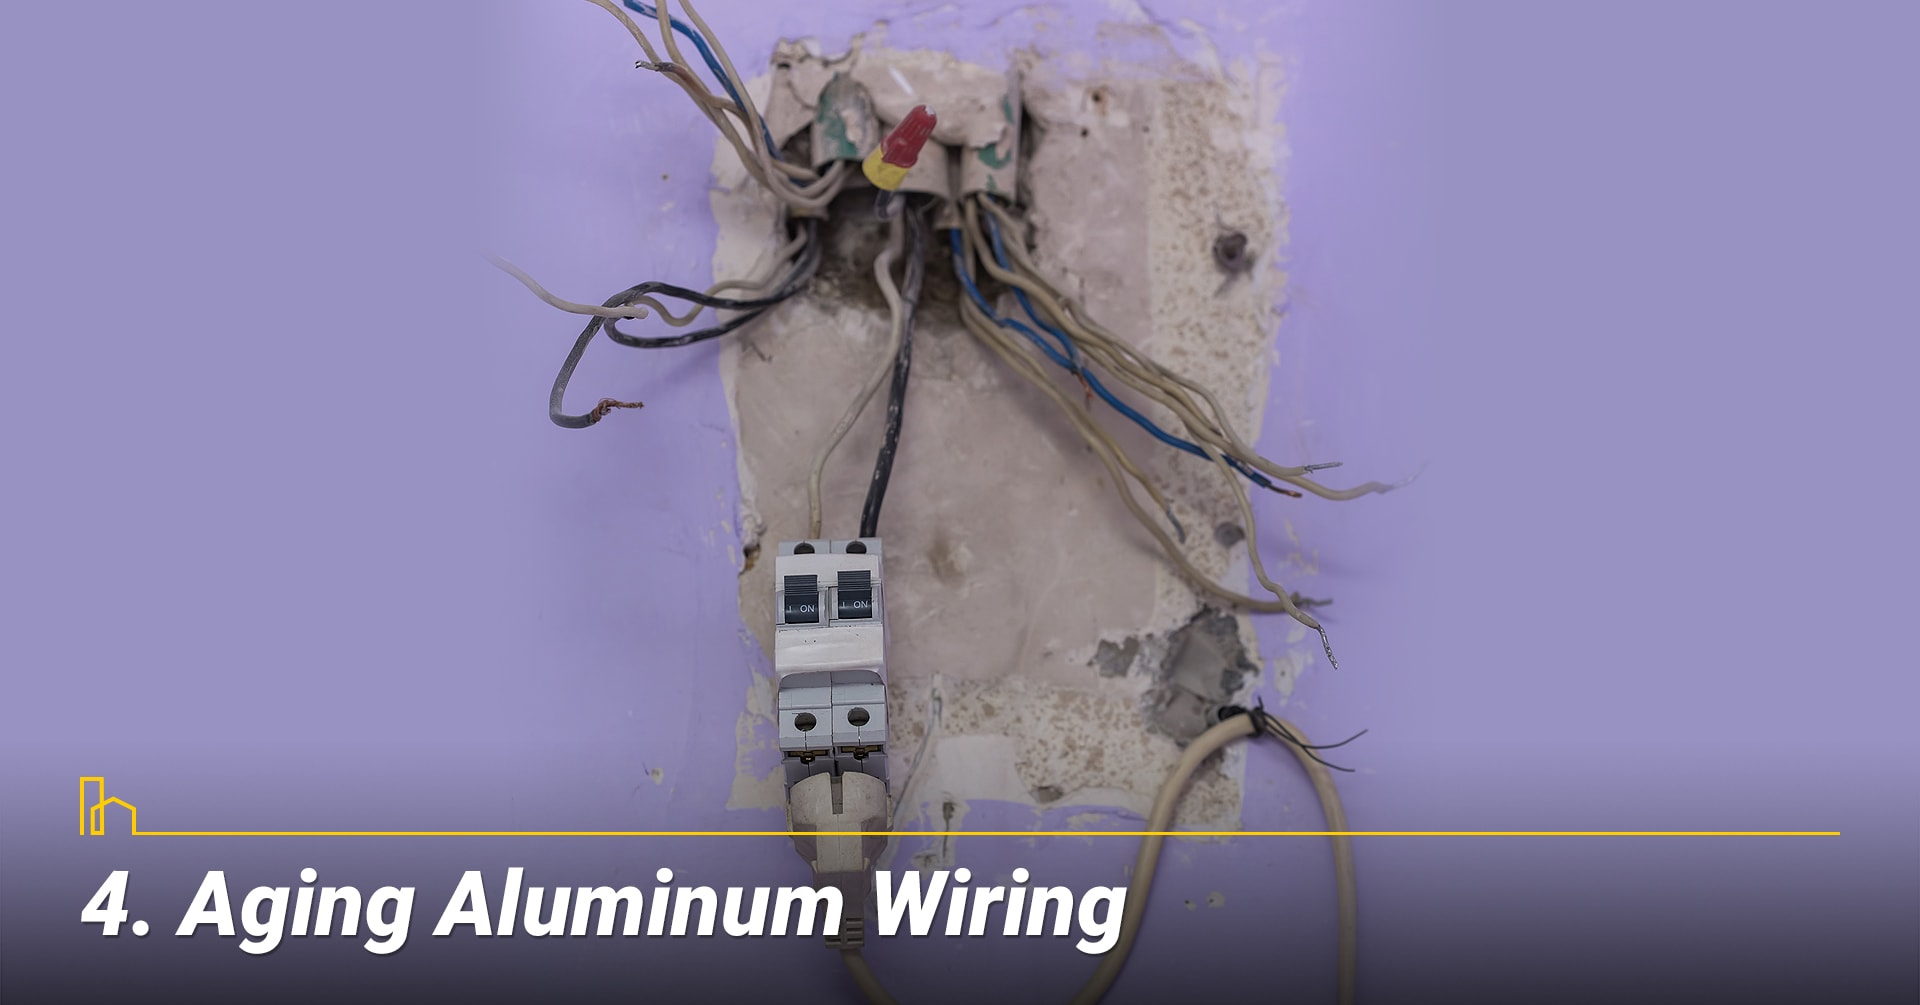 Aging Aluminum Wiring, old wires